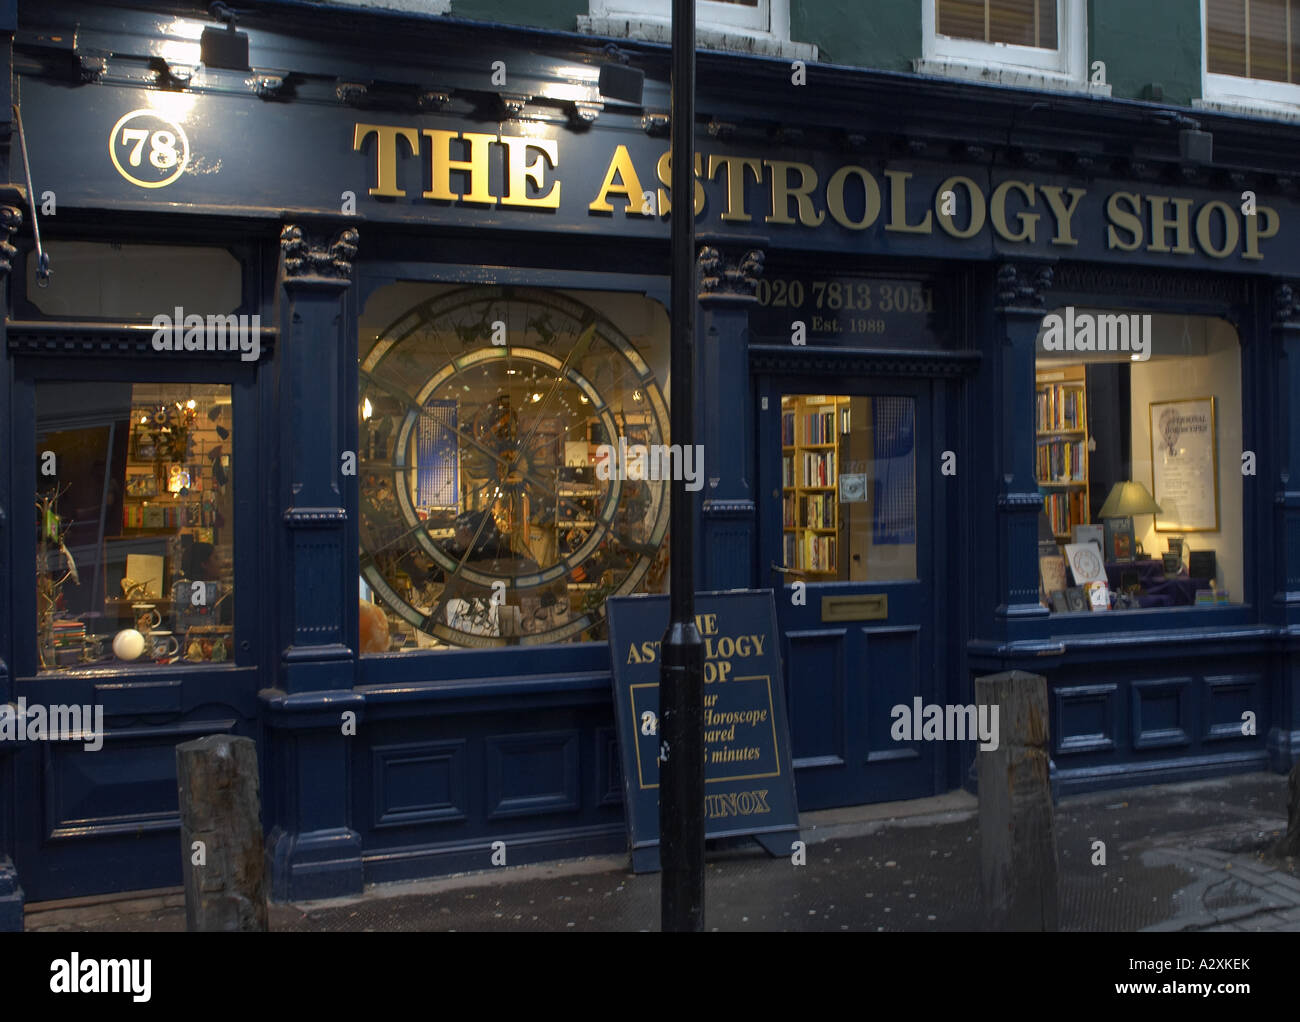 The Astrology Shop Covent Garden London - Stock Image